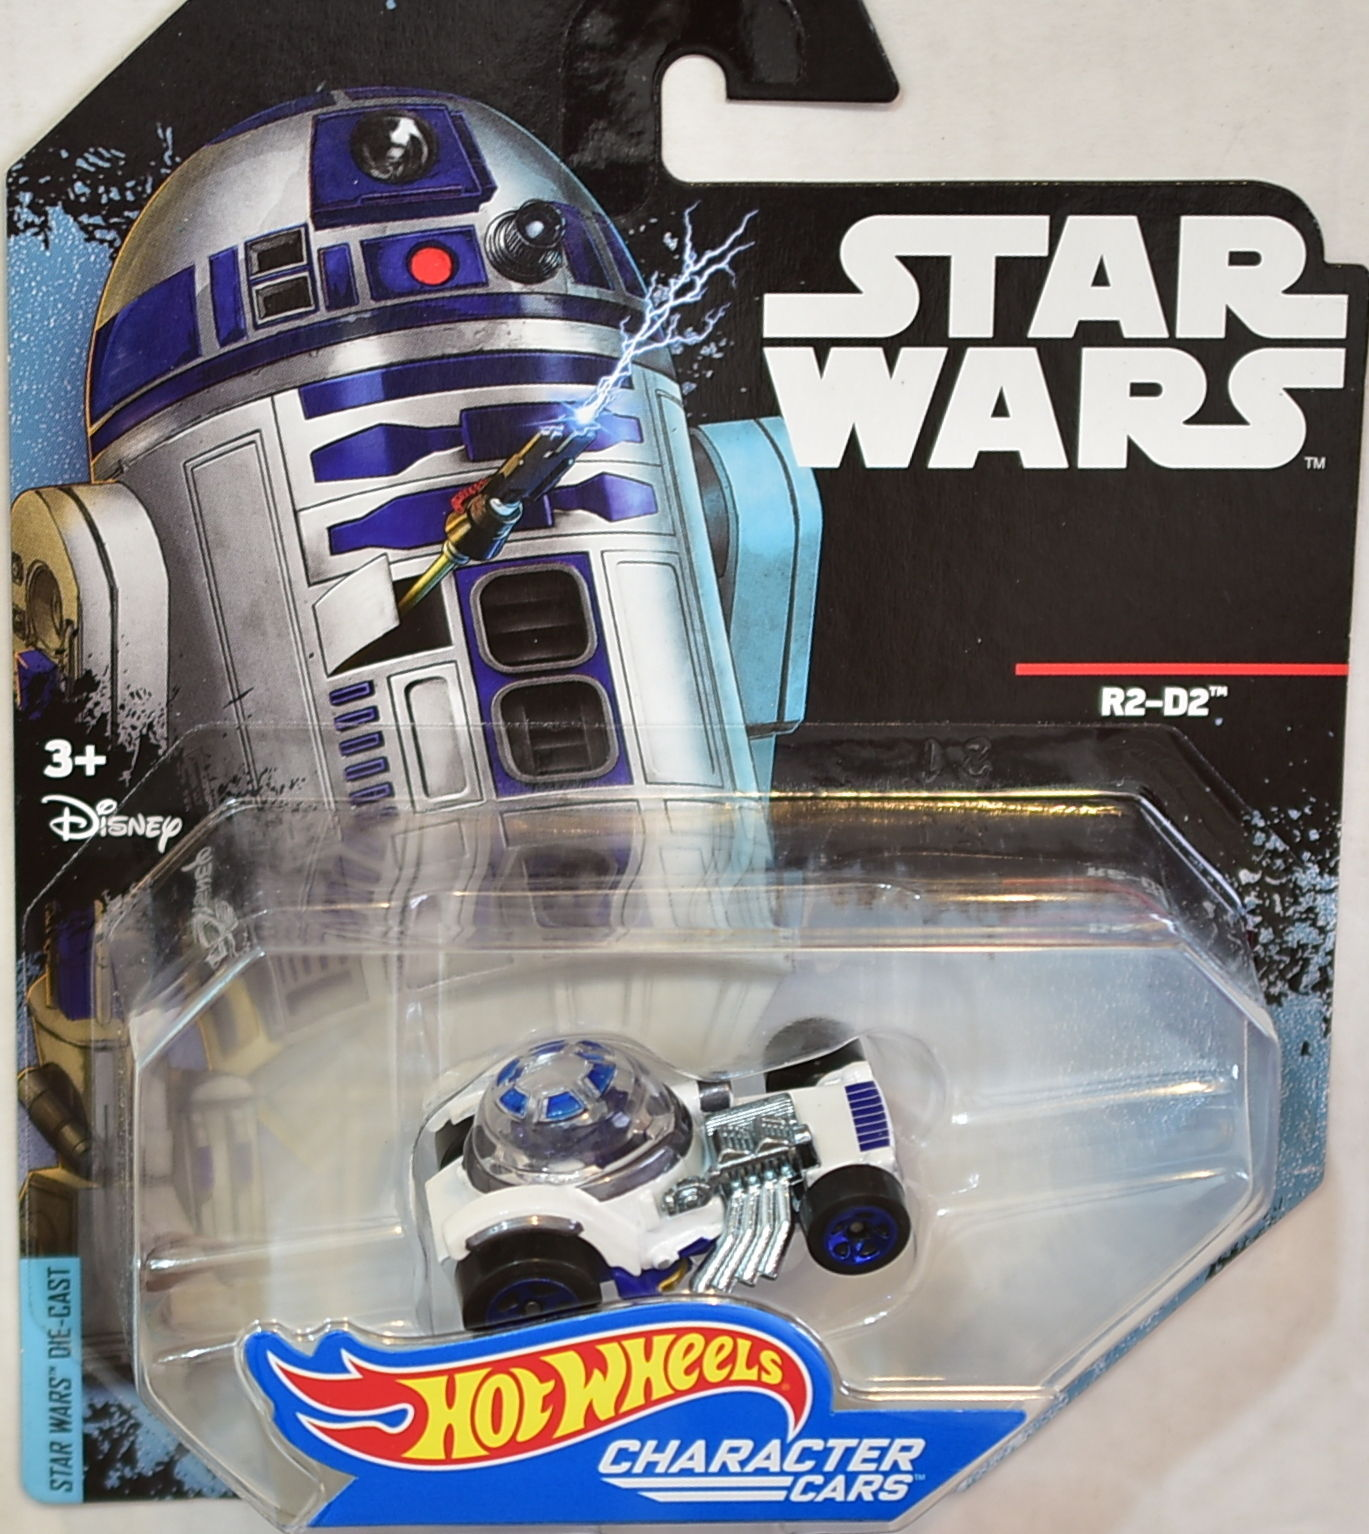 STAR WARS 2014 HOT WHEELS R2-D2 CHARACTER CARS